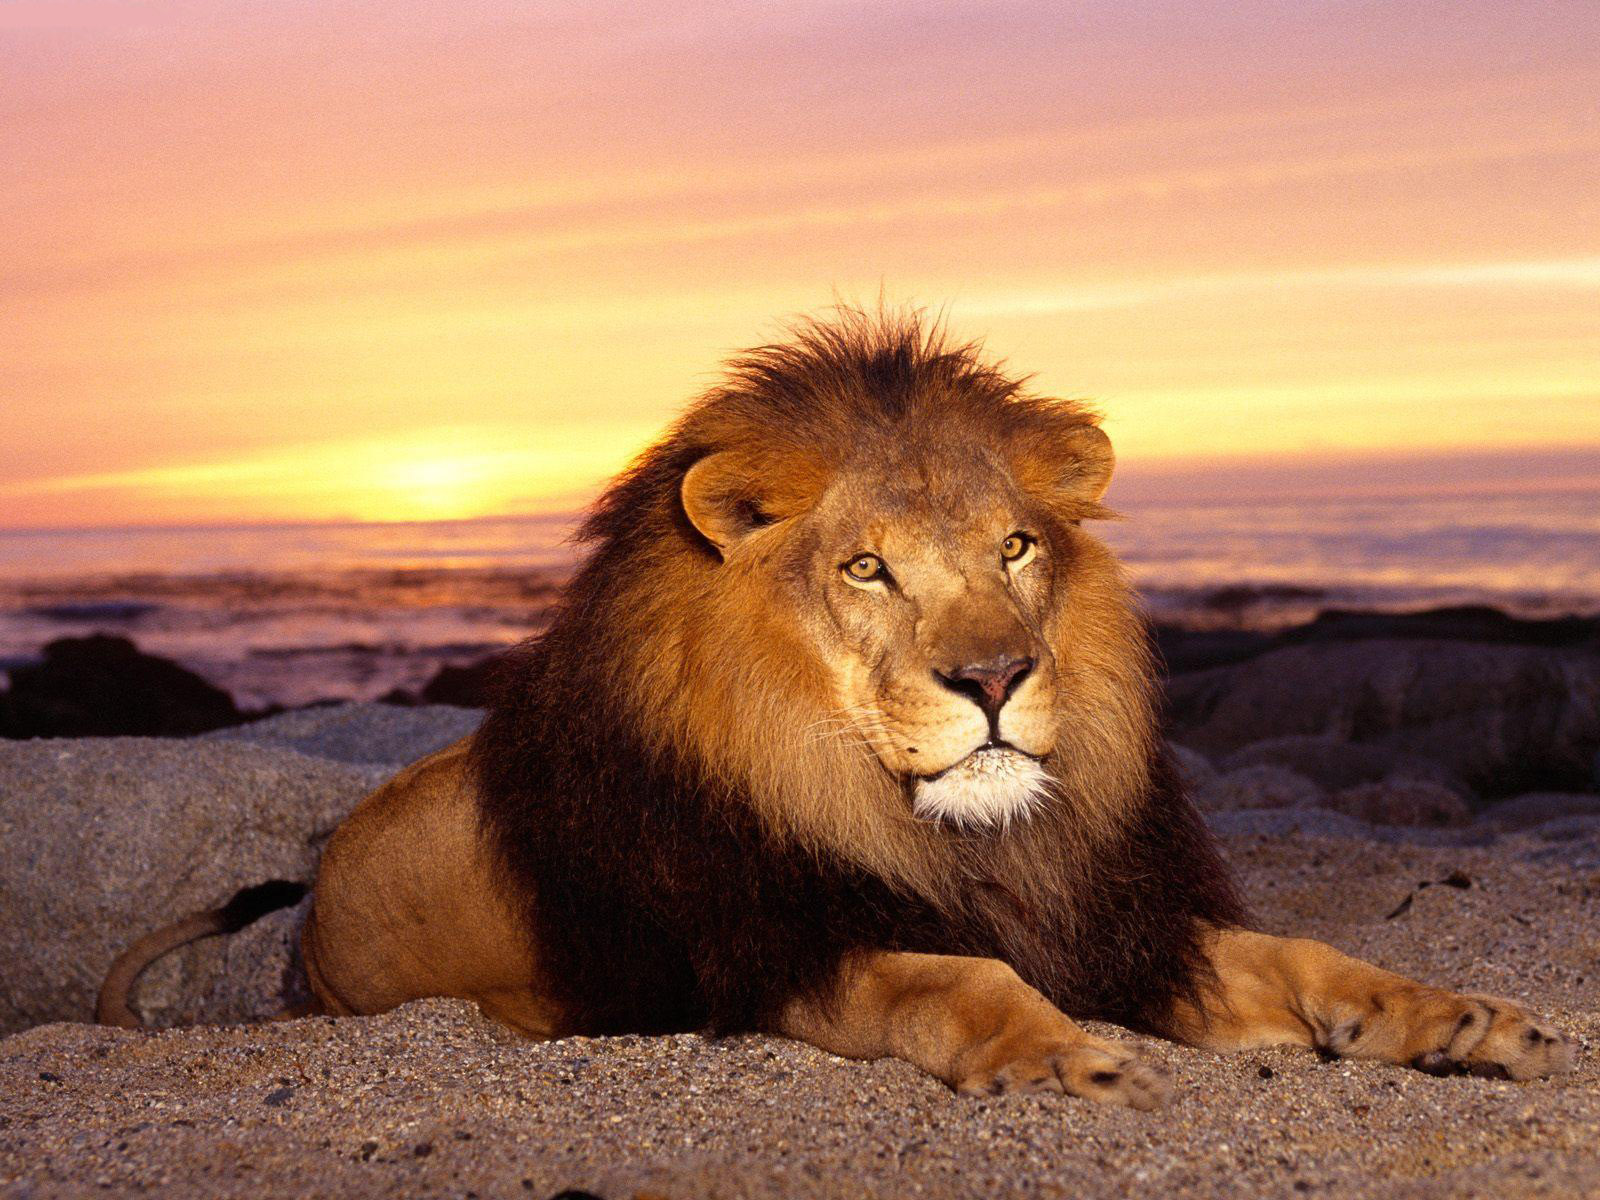 HD Lion Pictures Lions Wallpapers   HD Animal Wallpapers 1600x1200